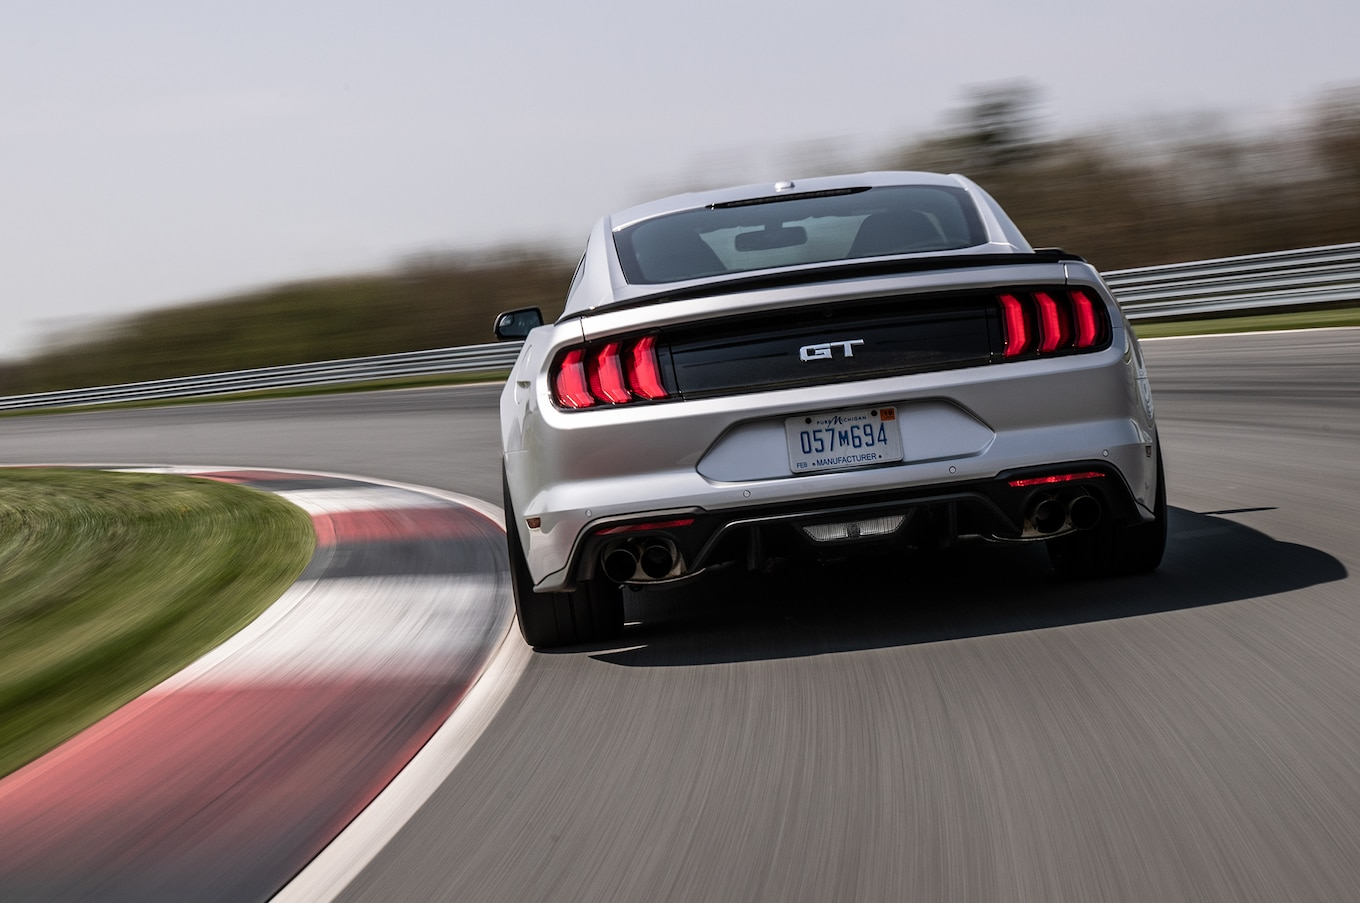 2018 Ford Mustang GT Performance Pack 2 Rear Wallpaper